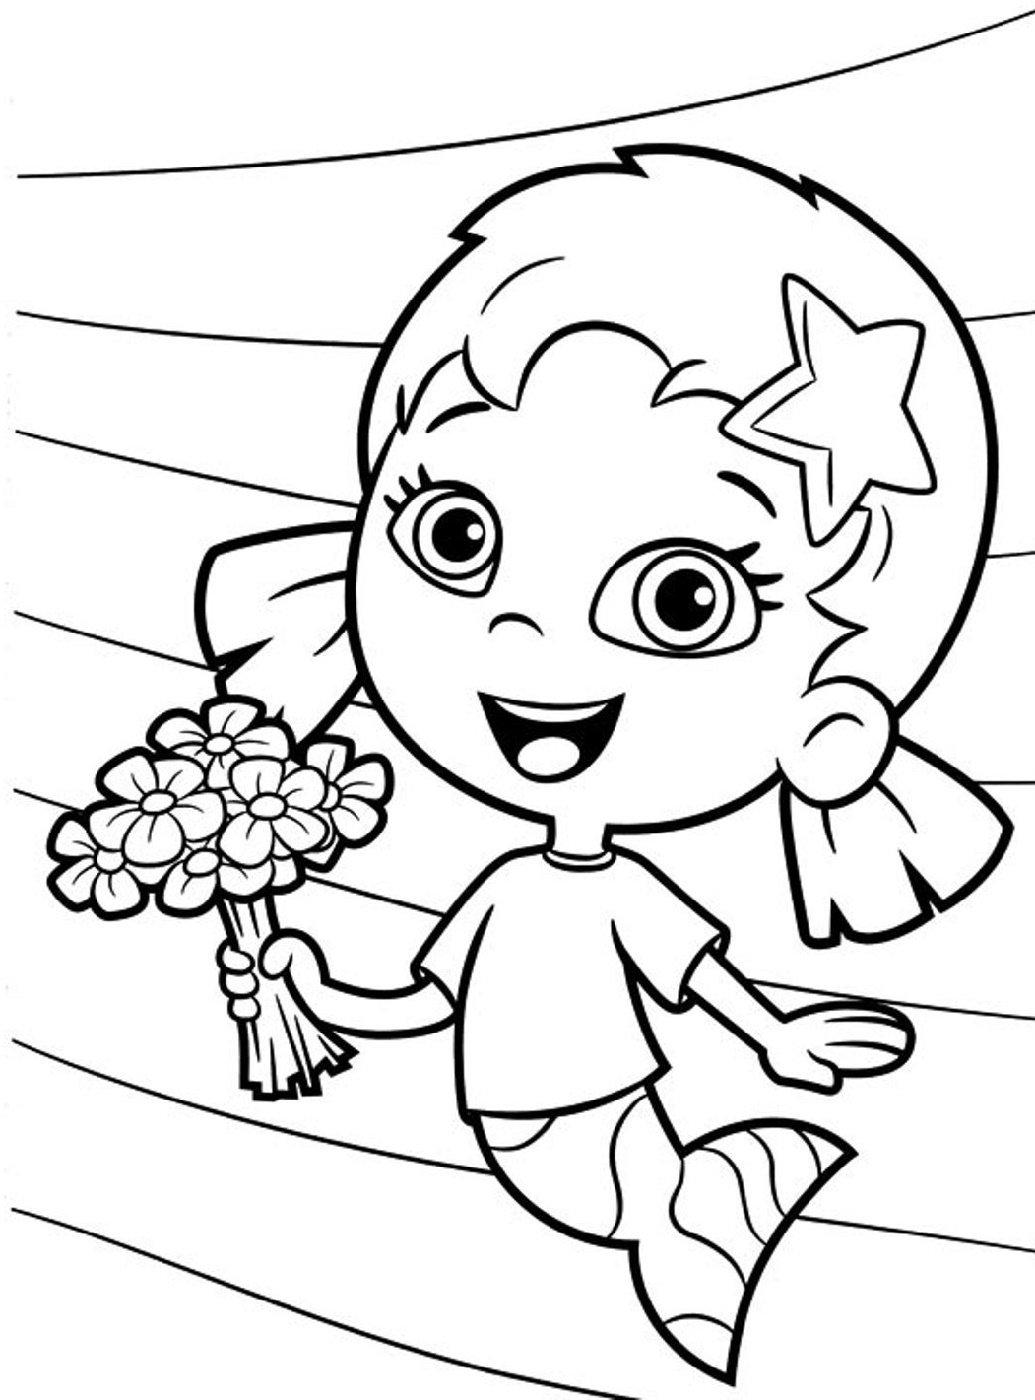 Bubble Guppies Coloring Pages For Students